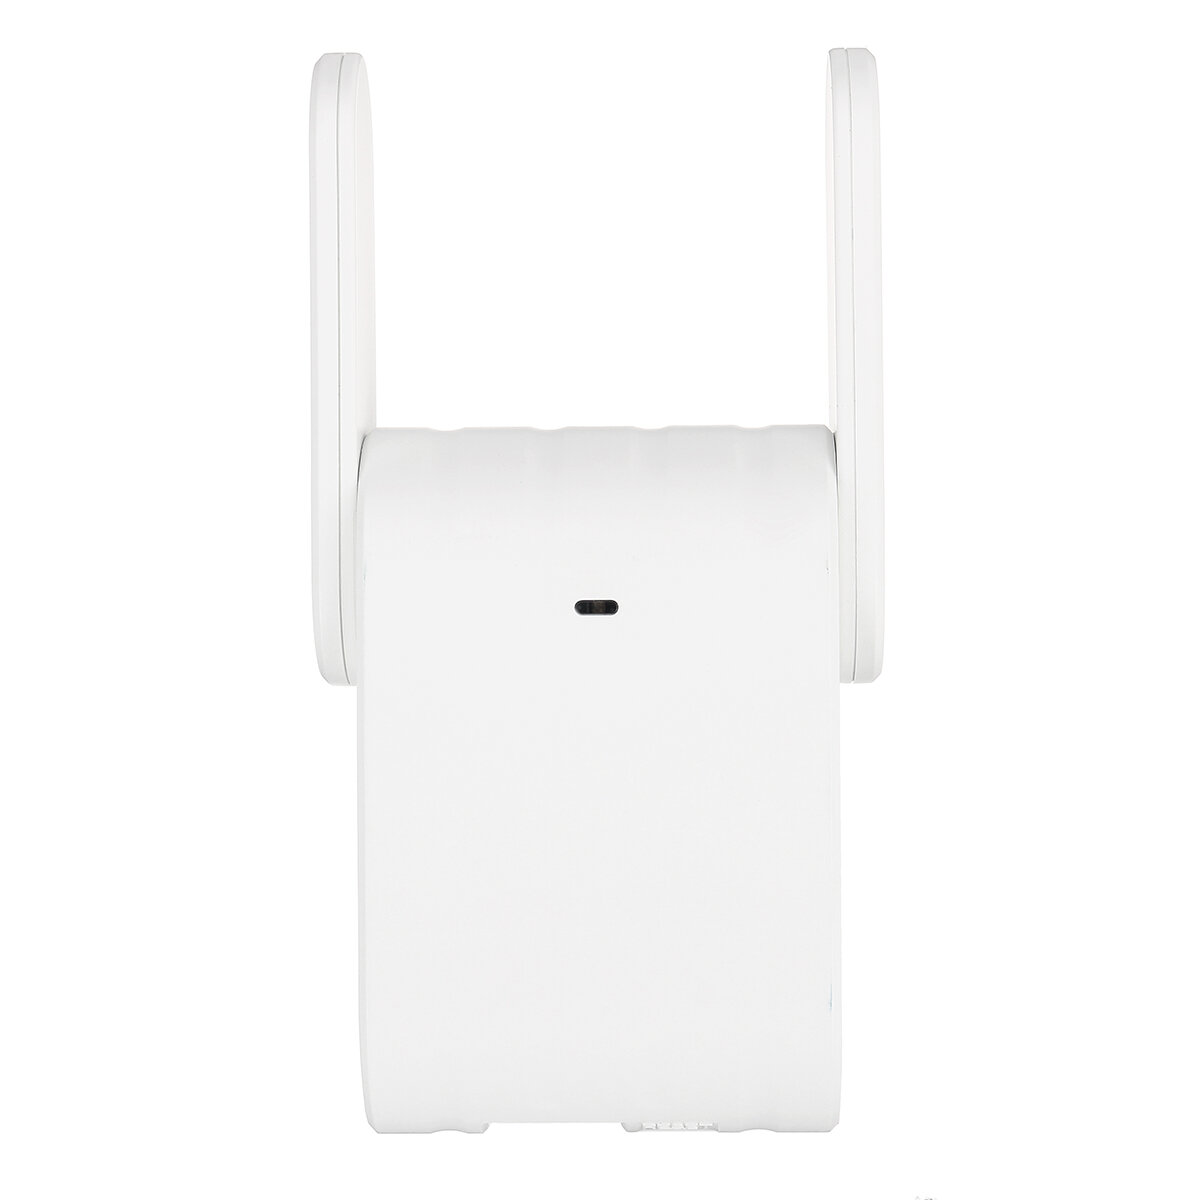 300Mbps Wireless-N Wifi Repeater 2.4G AP Router Signal Booster Amplifier Antenna WIFI Extender WiFi Repeater Router